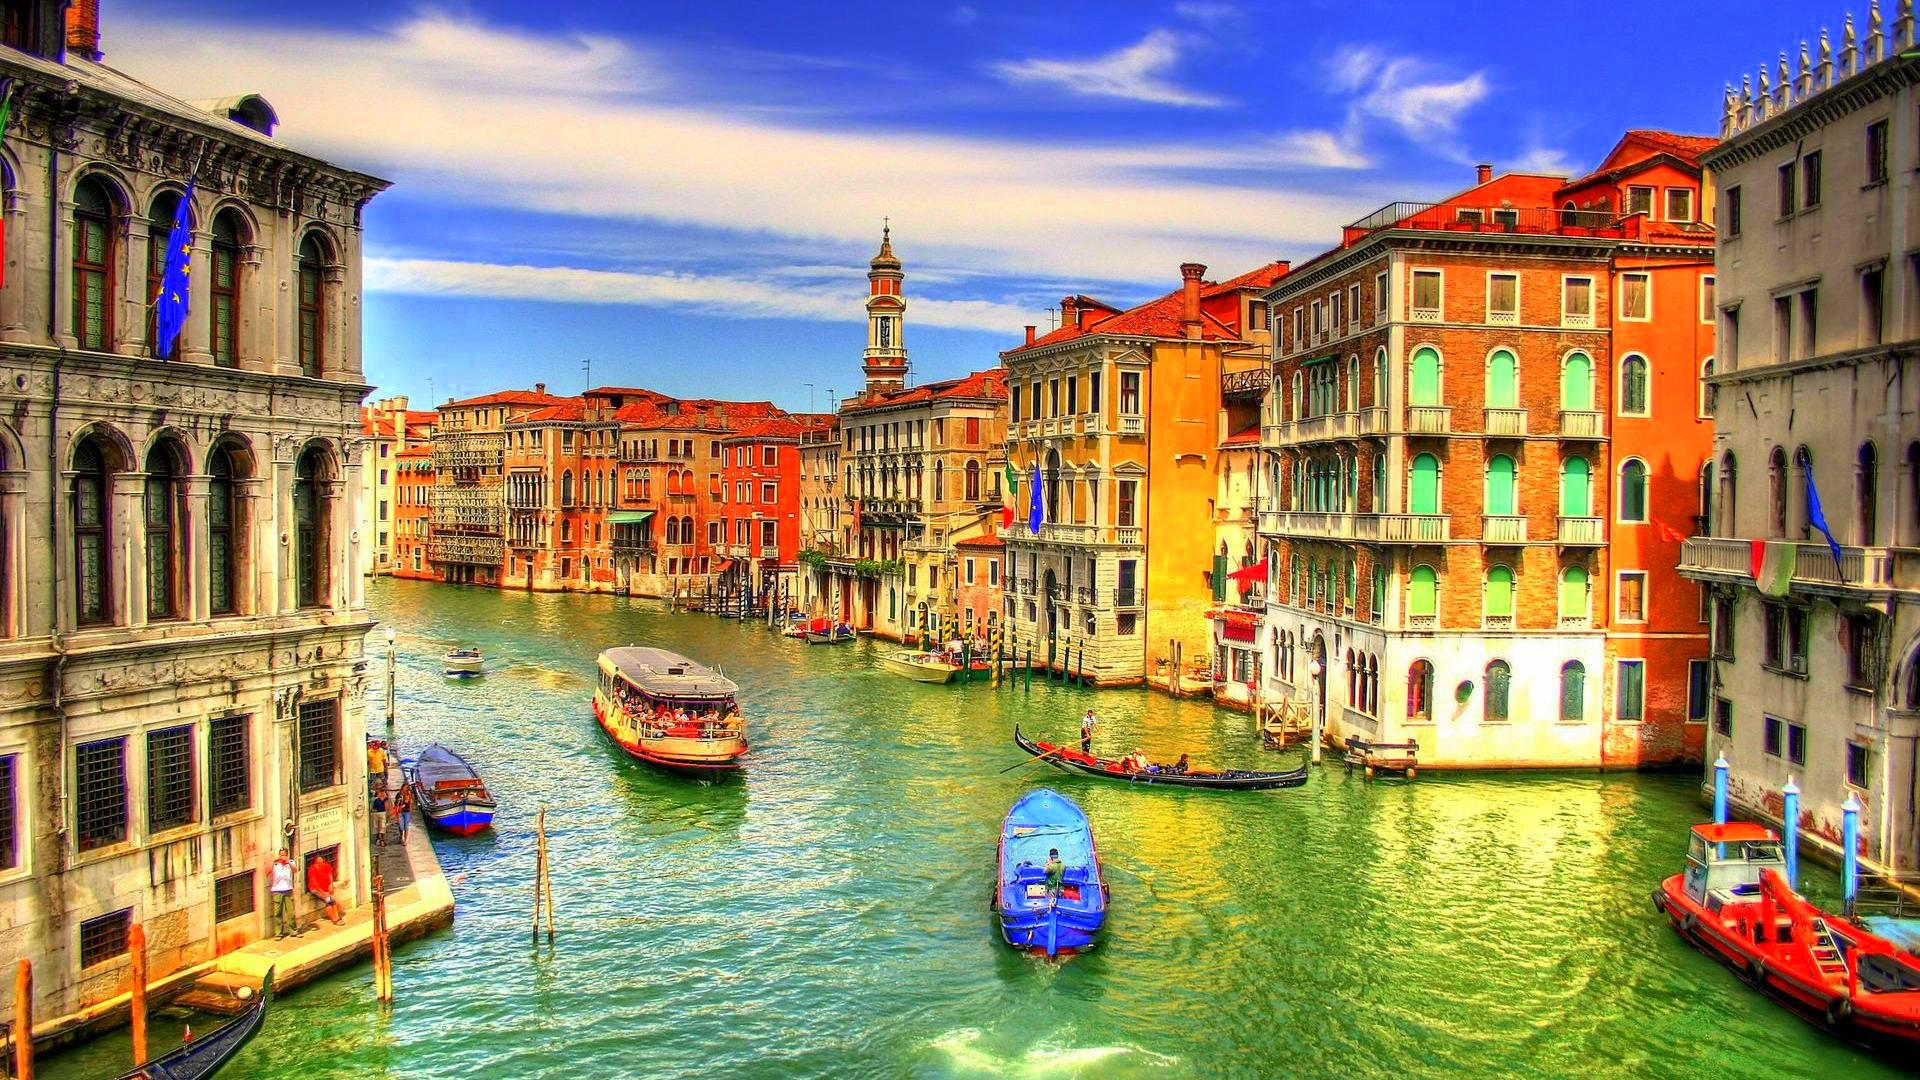 venice italy free desktop wallpaper download